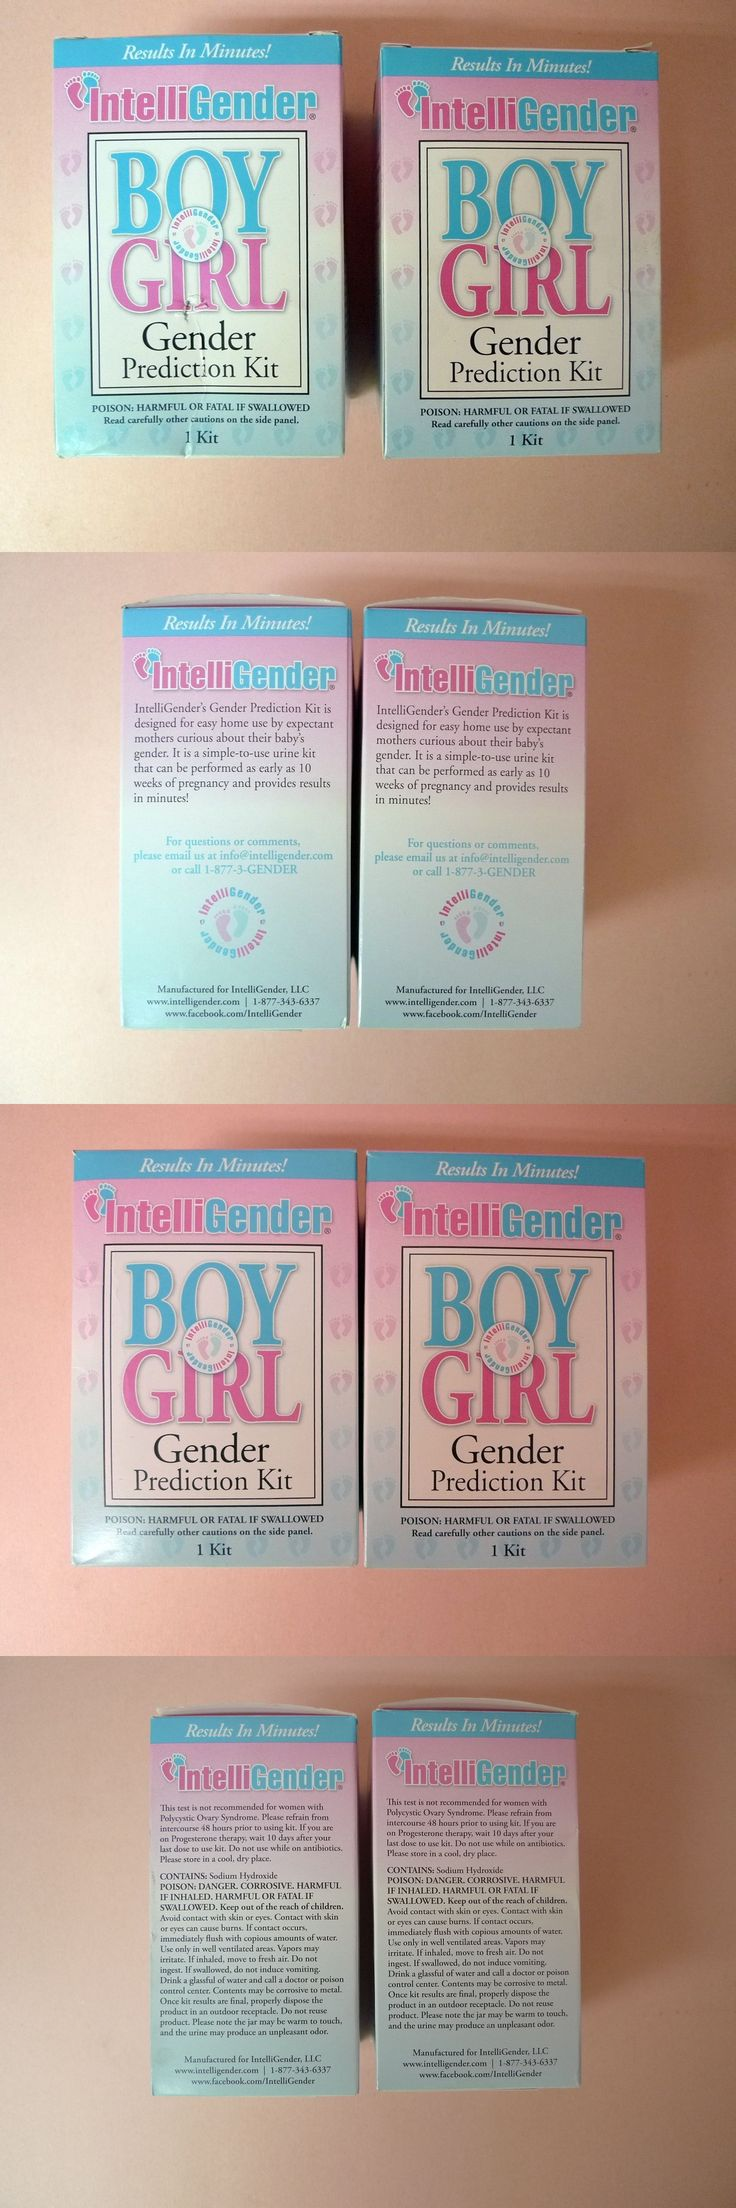 Pregnancy Tests: Lot Of 2 New Intelligender Boy Or Girl Gender Prediction Test Kits -> BUY IT NOW ONLY: $46.95 on eBay!